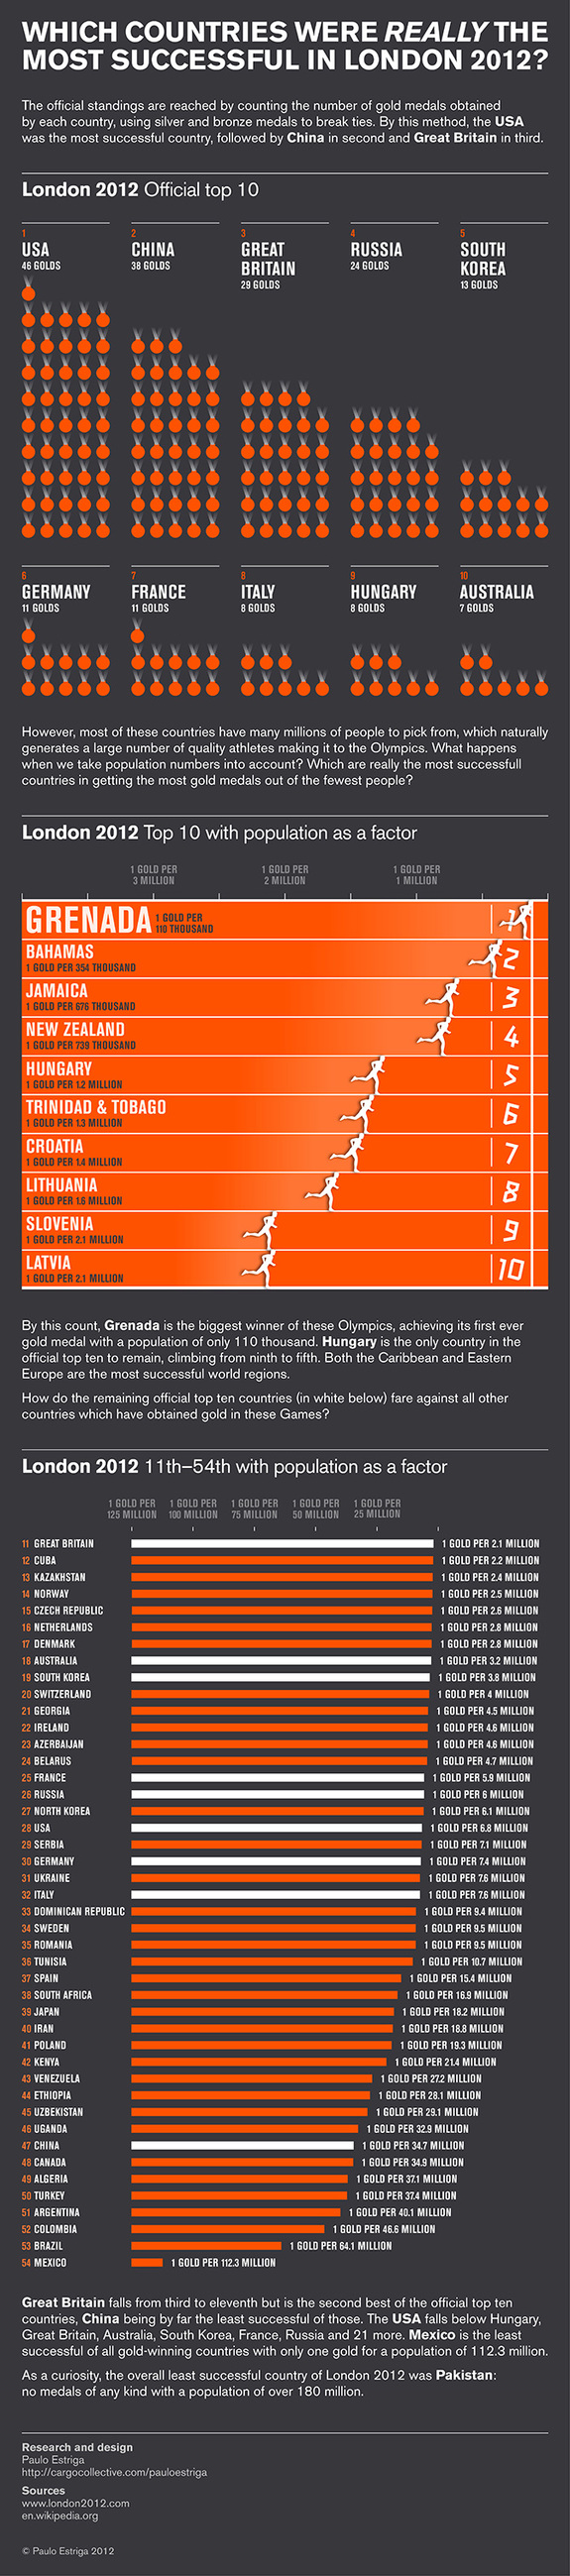 London 2012 success infographic